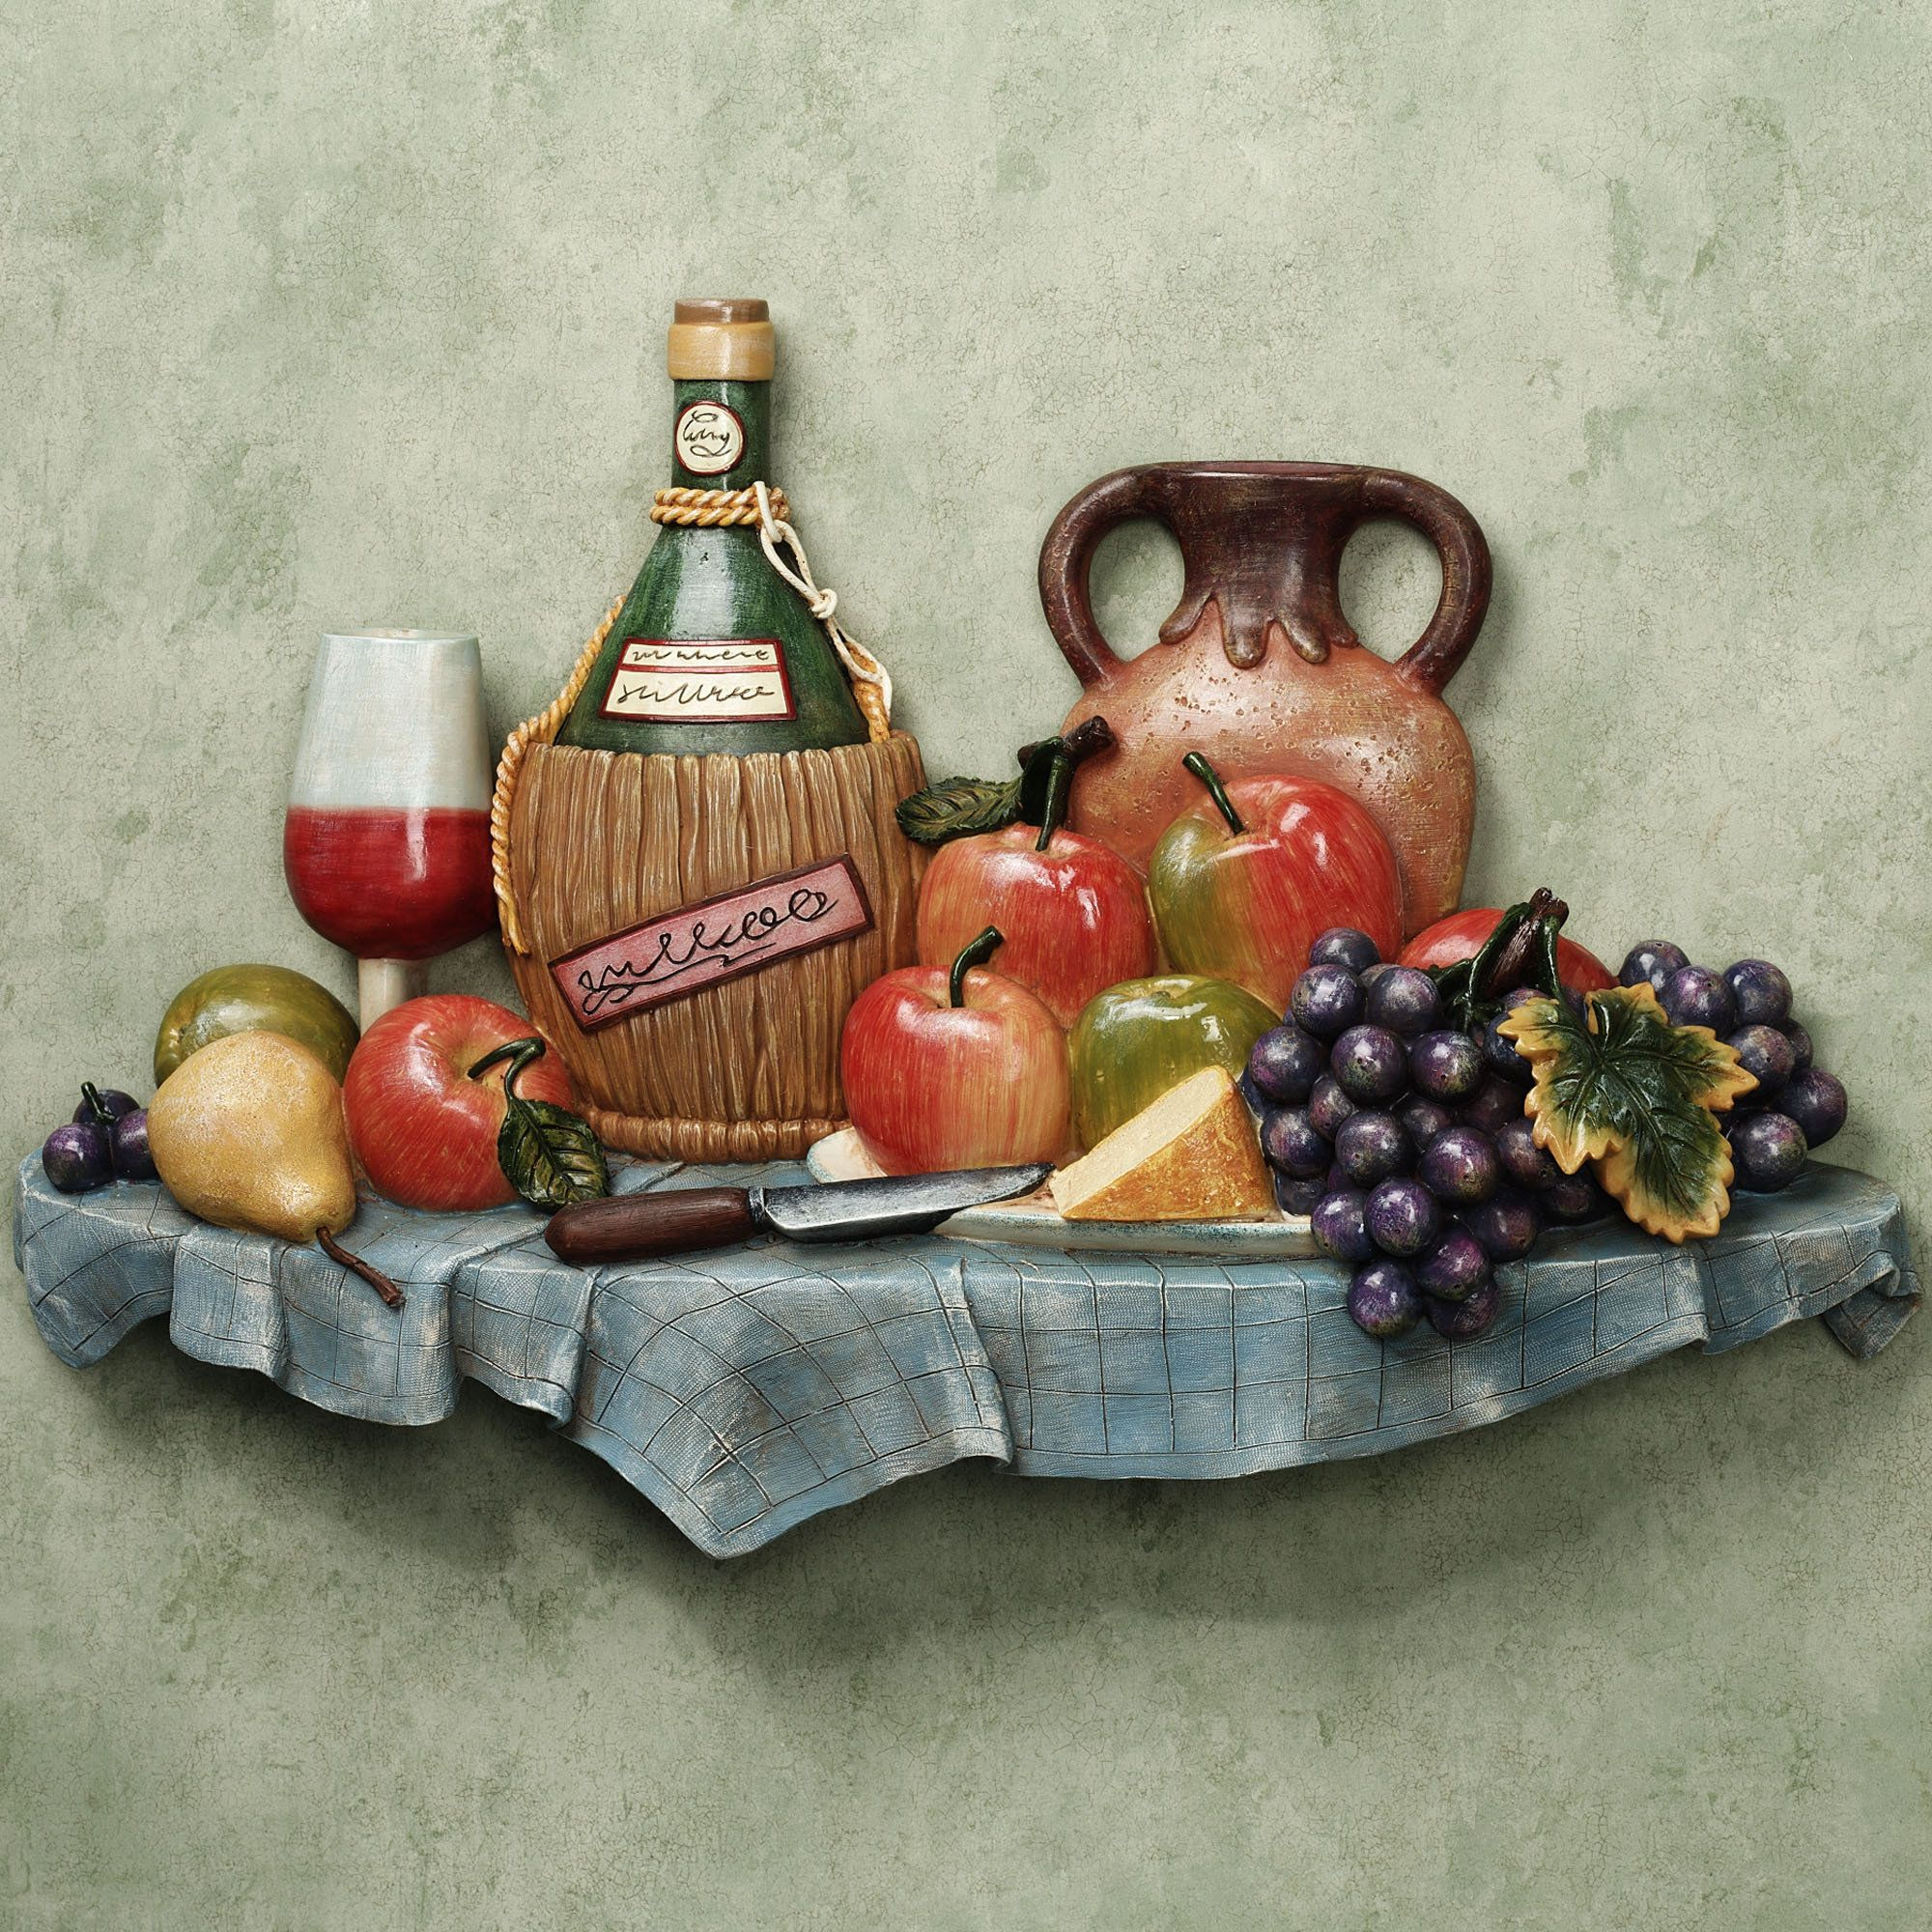 Italian Feast Kitchen Wall Plaque Home u003e Walls Wall decor